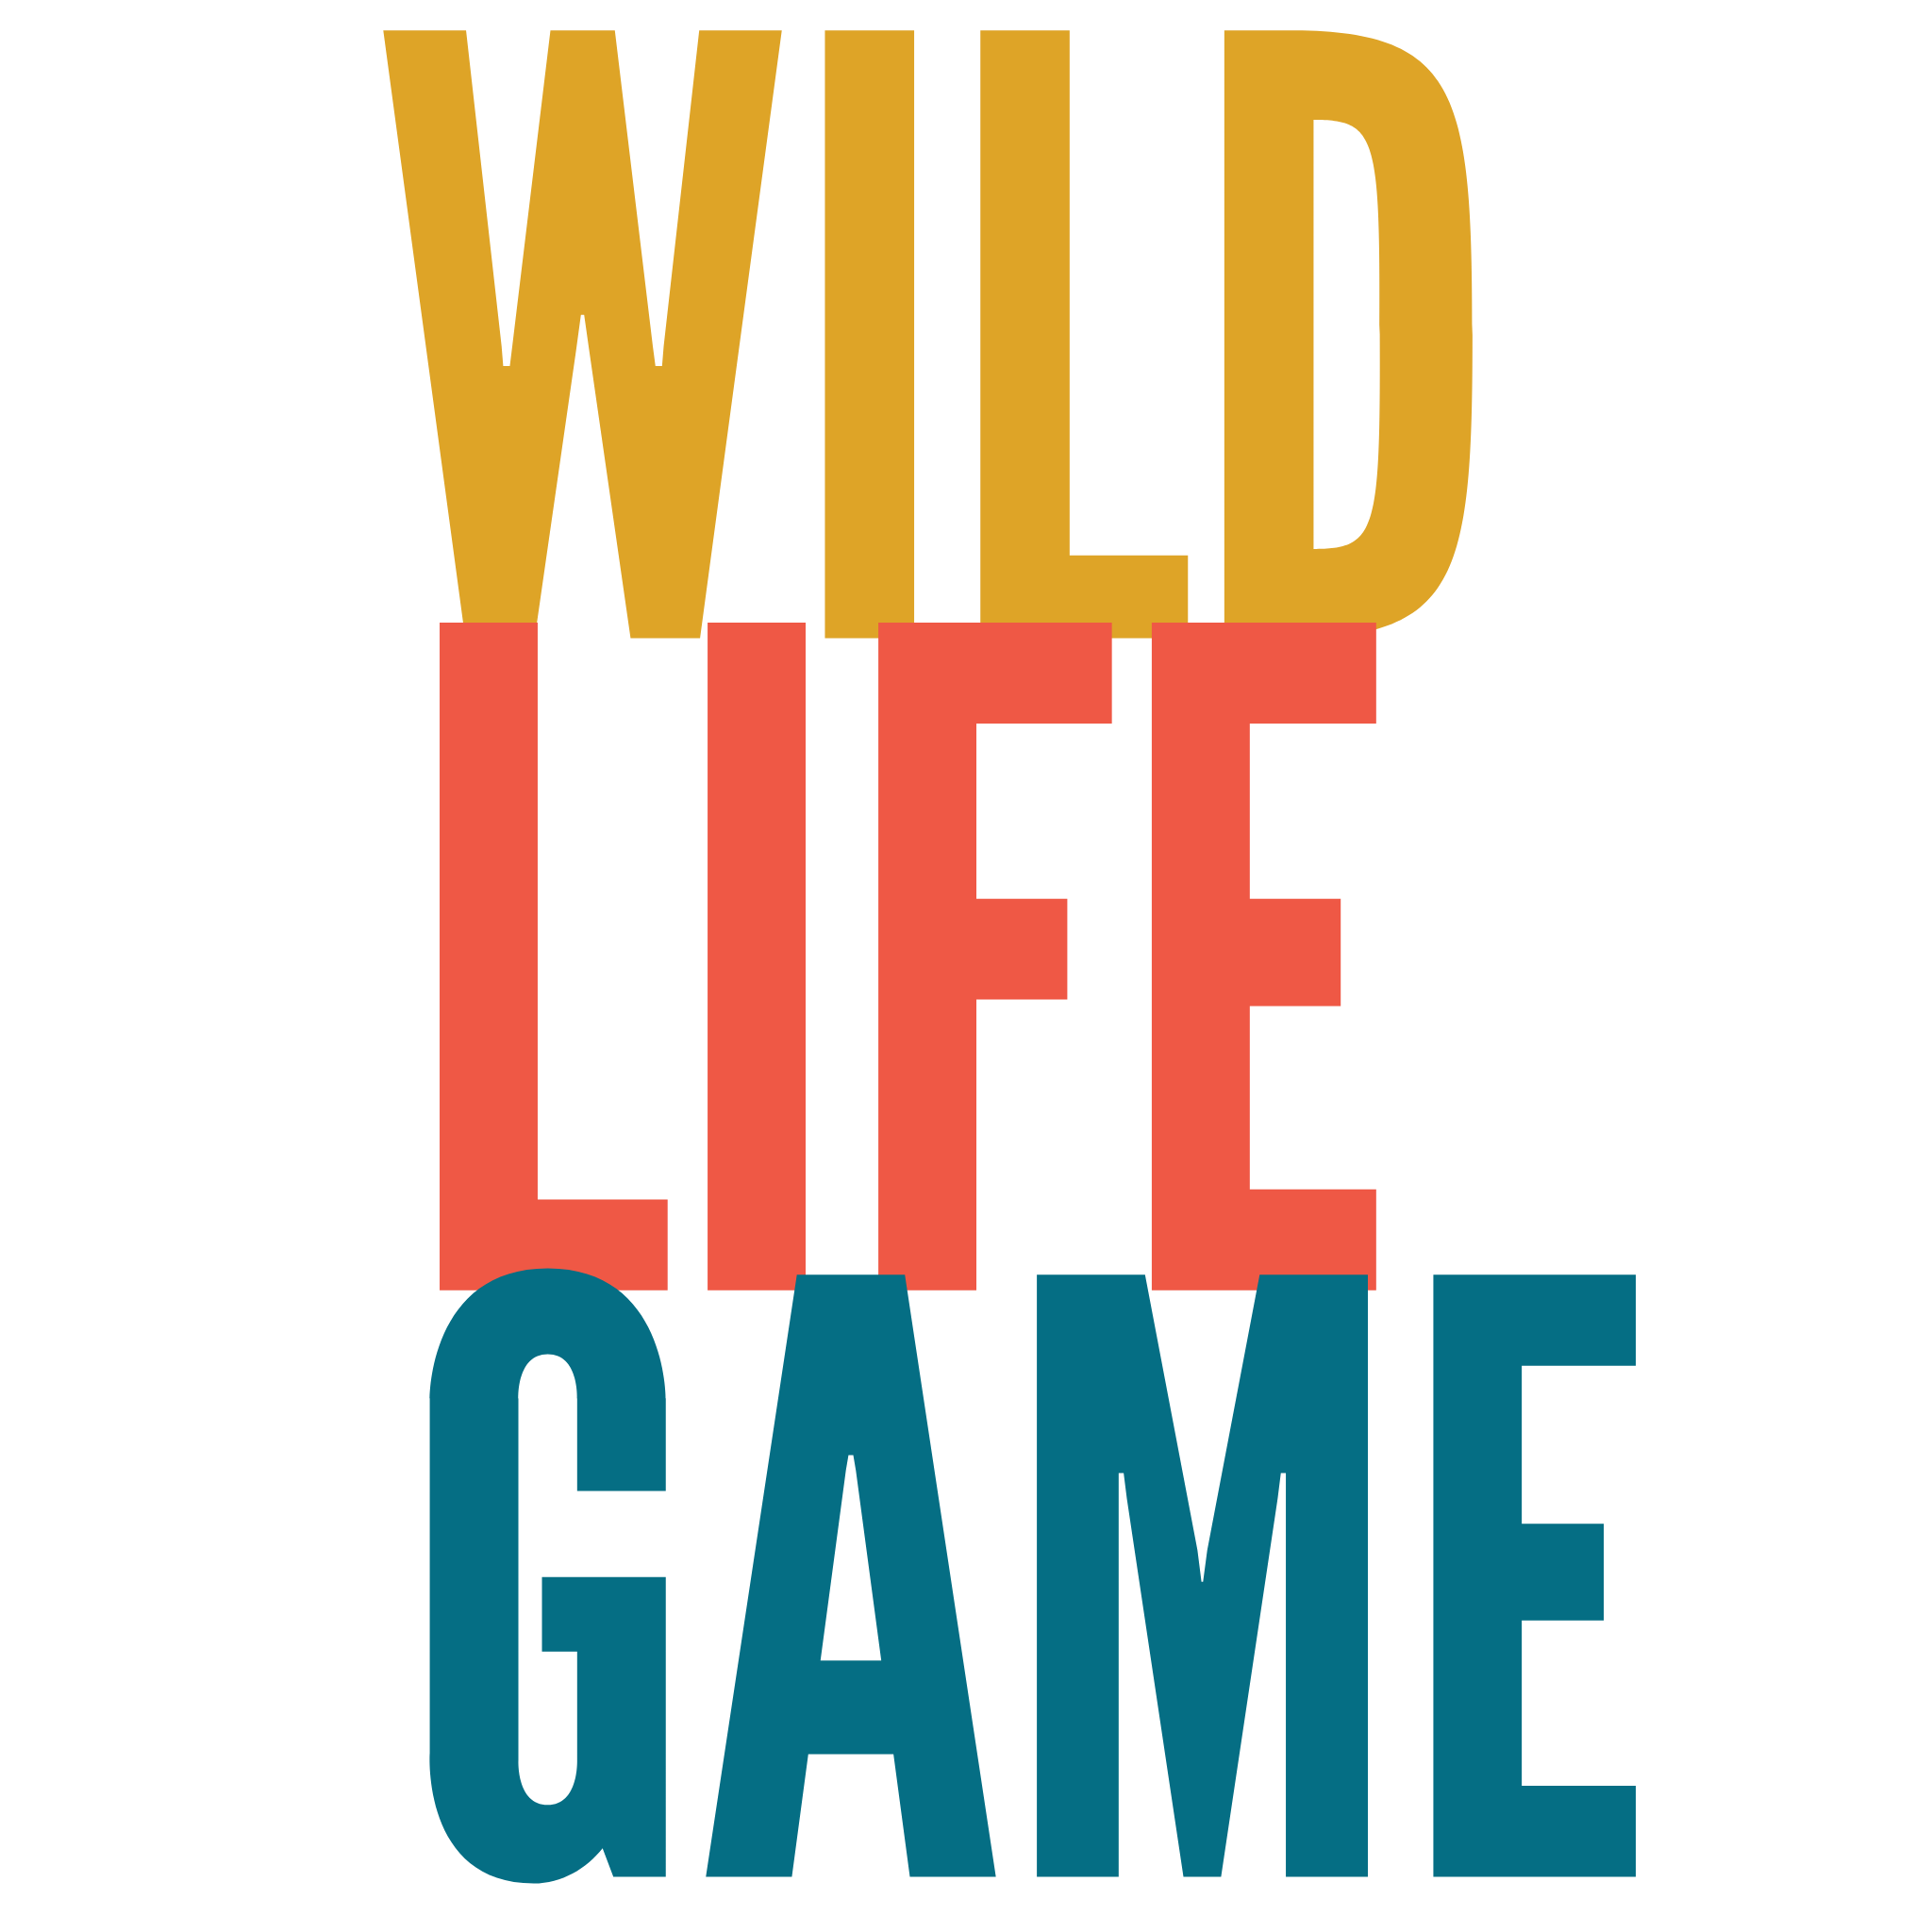 Wild Life Game Typography Design Free Download